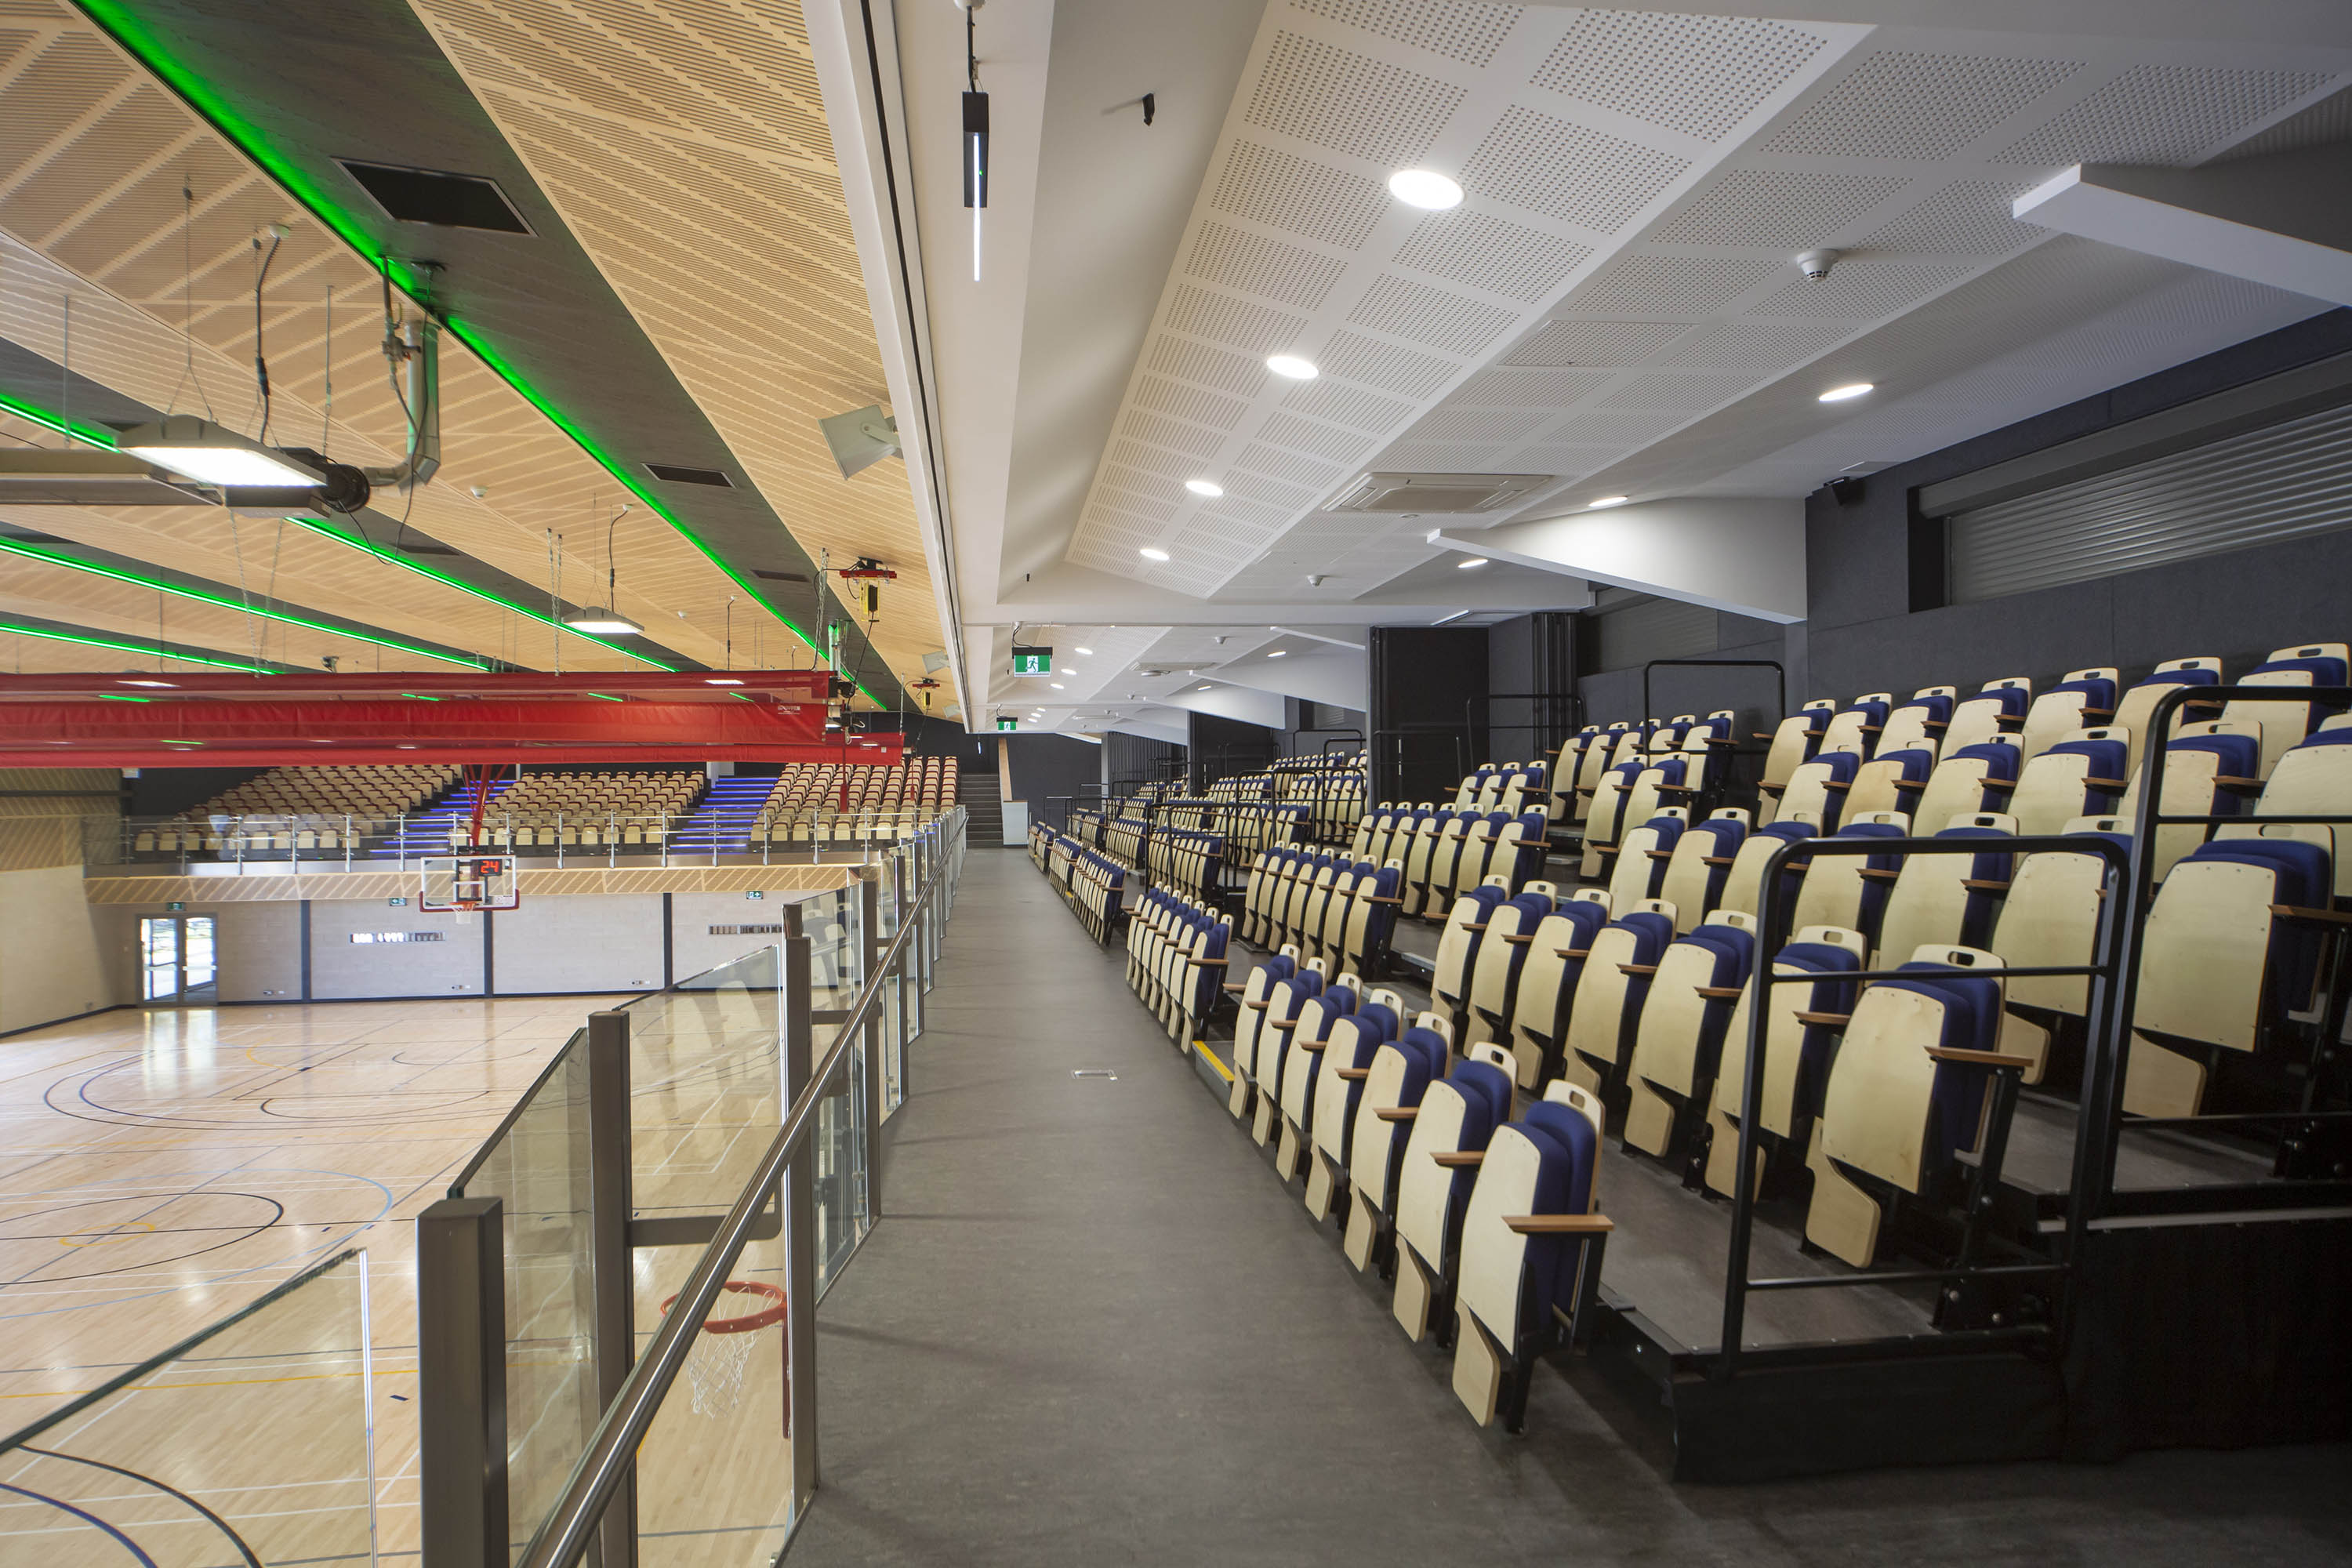 retractable seating, stadium seating, sports hall seating